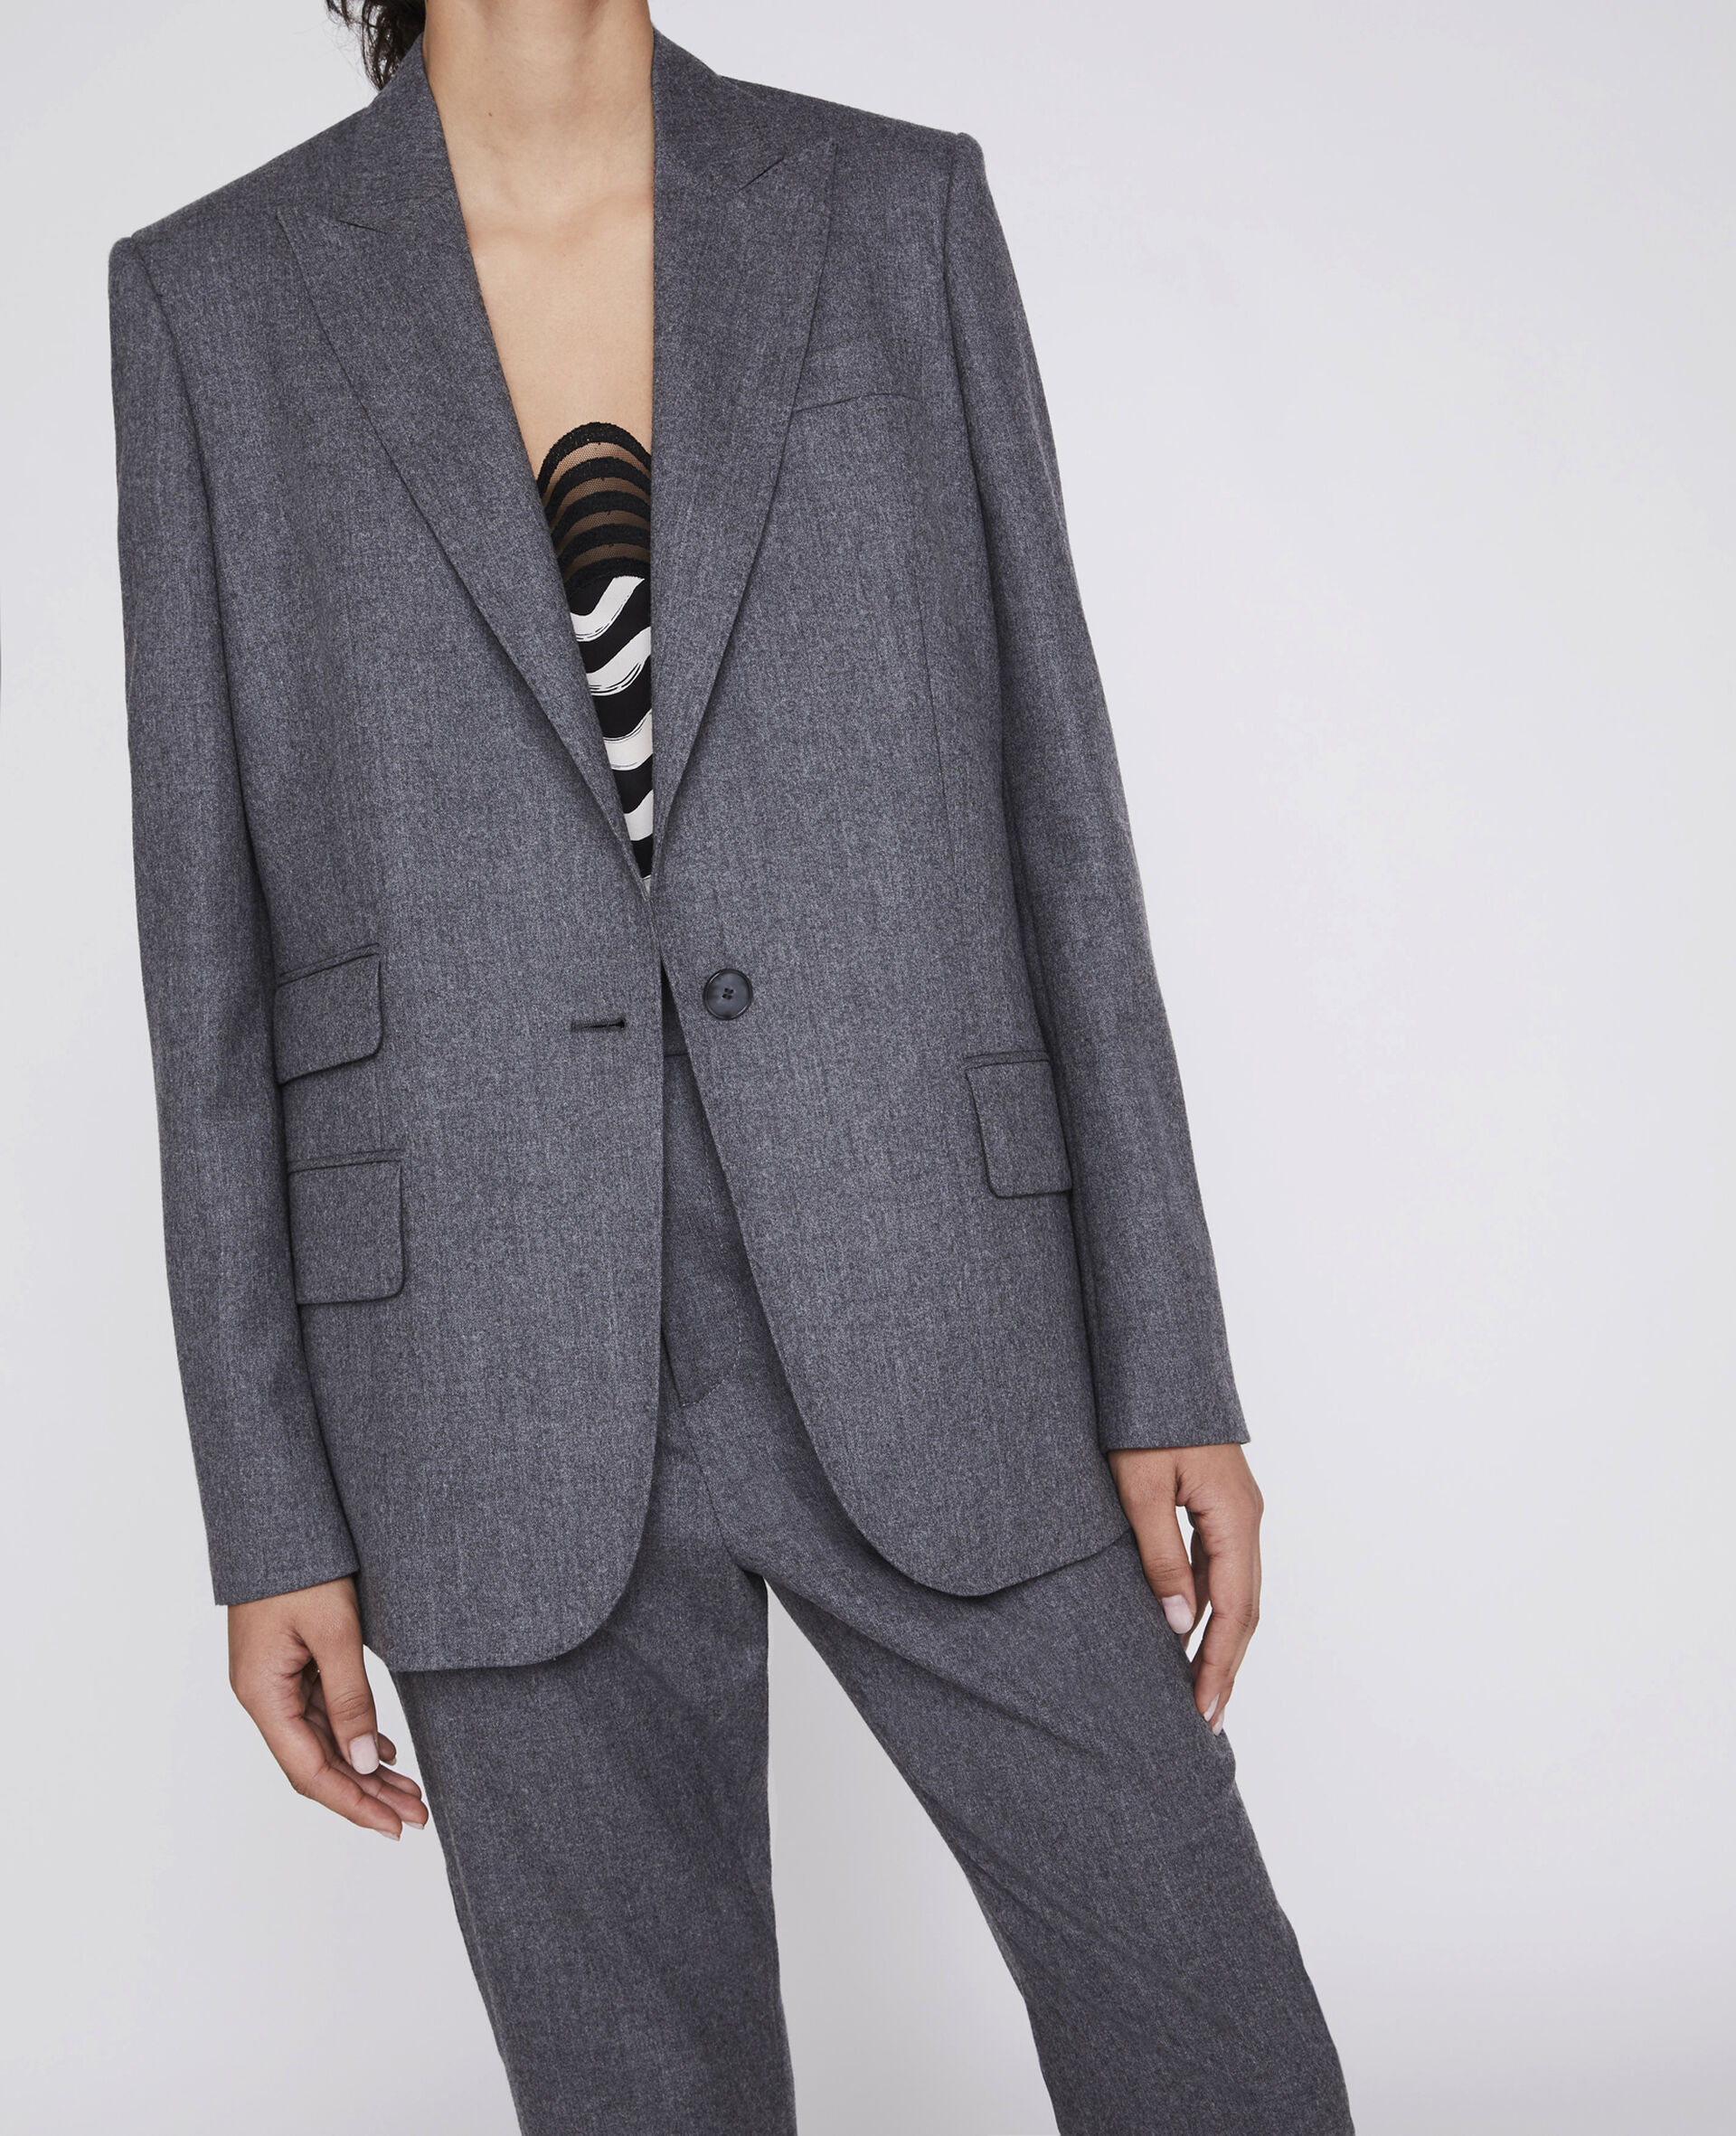 Tailored Bell Jacket -Grey-large image number 3